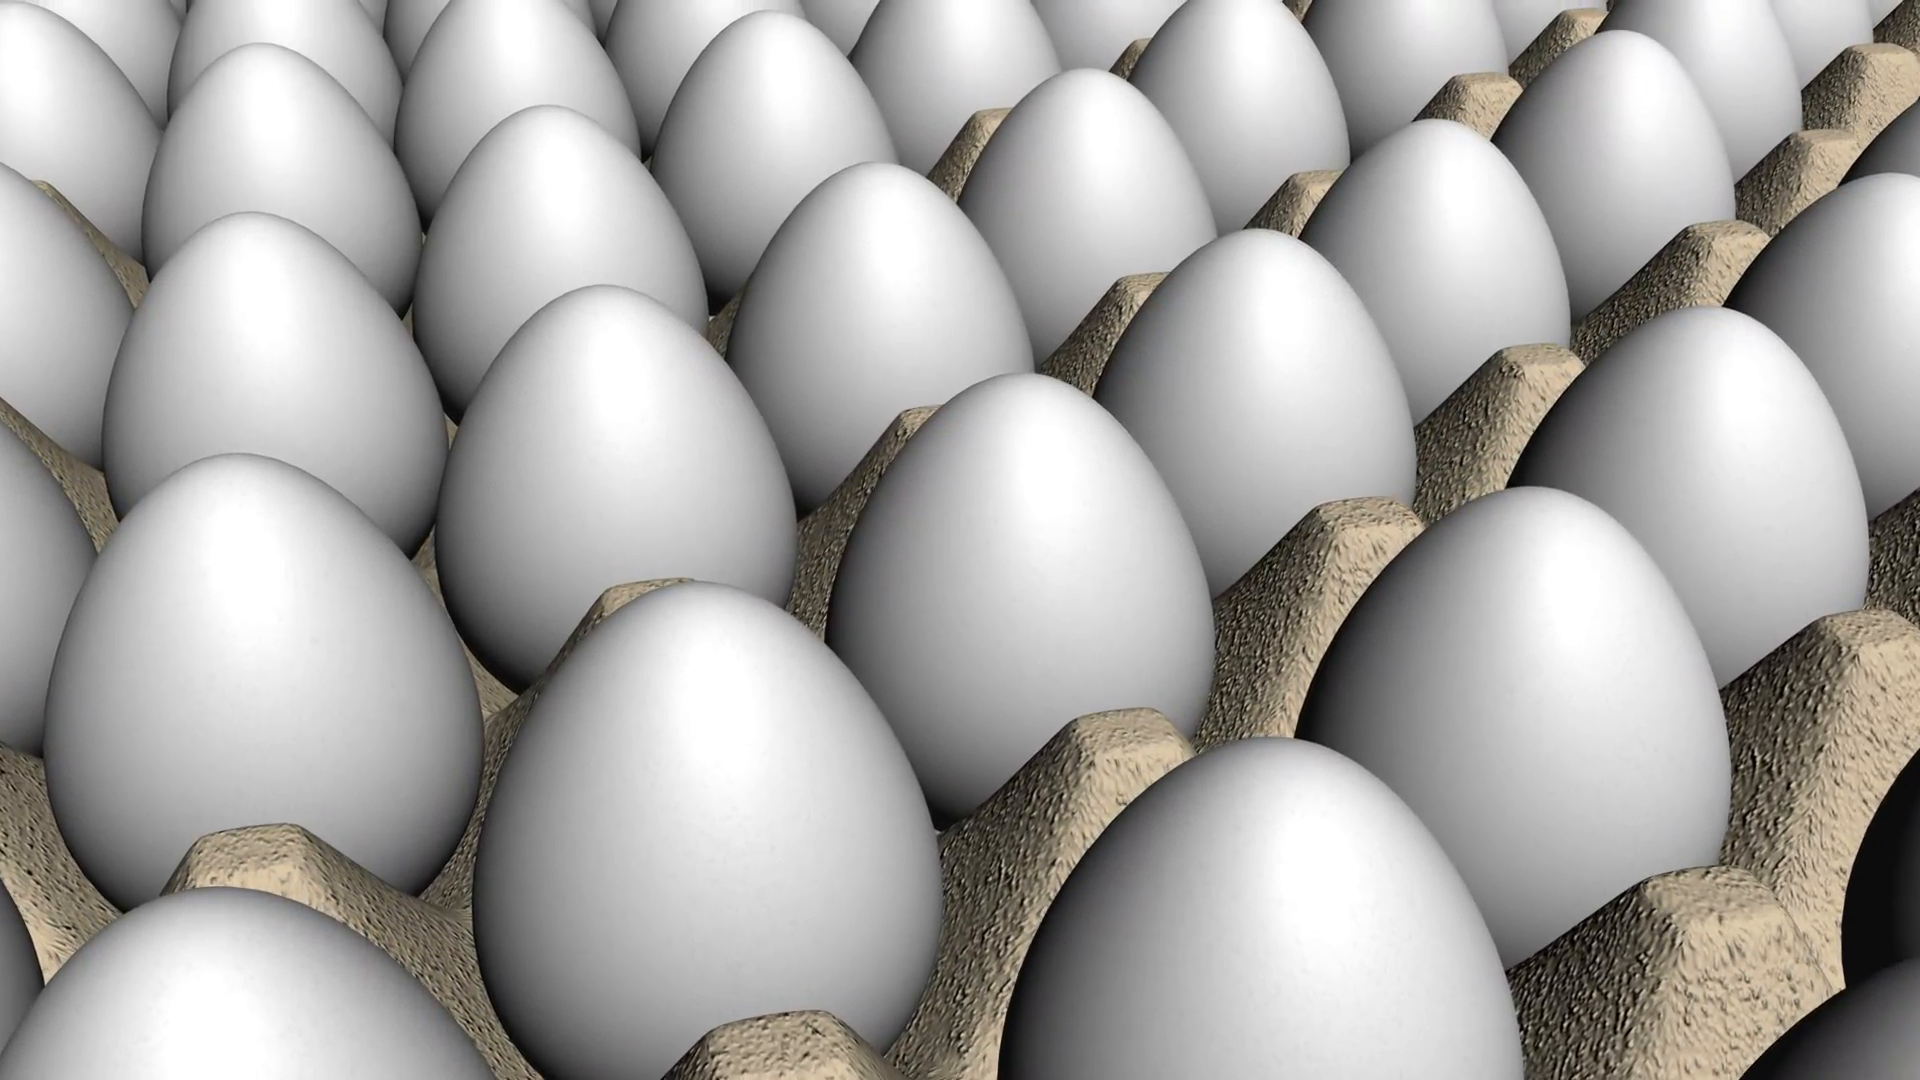 Egg HD PNG-PlusPNG.com-1920 - Egg HD PNG